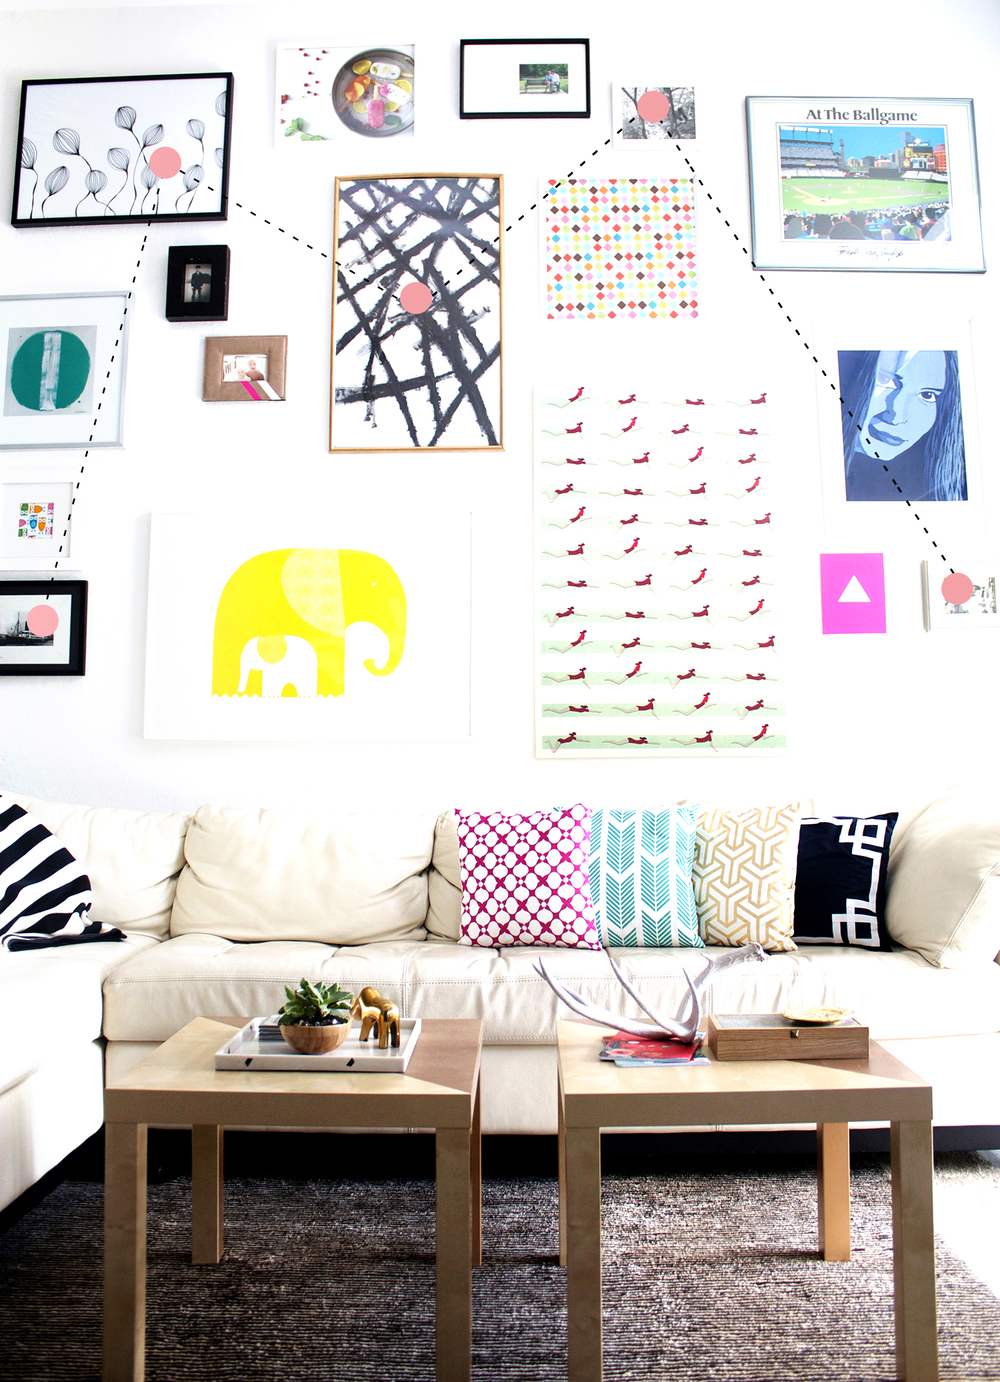 How To Do A Gallery Wall Kristi Murphy Do It Yourself Blog